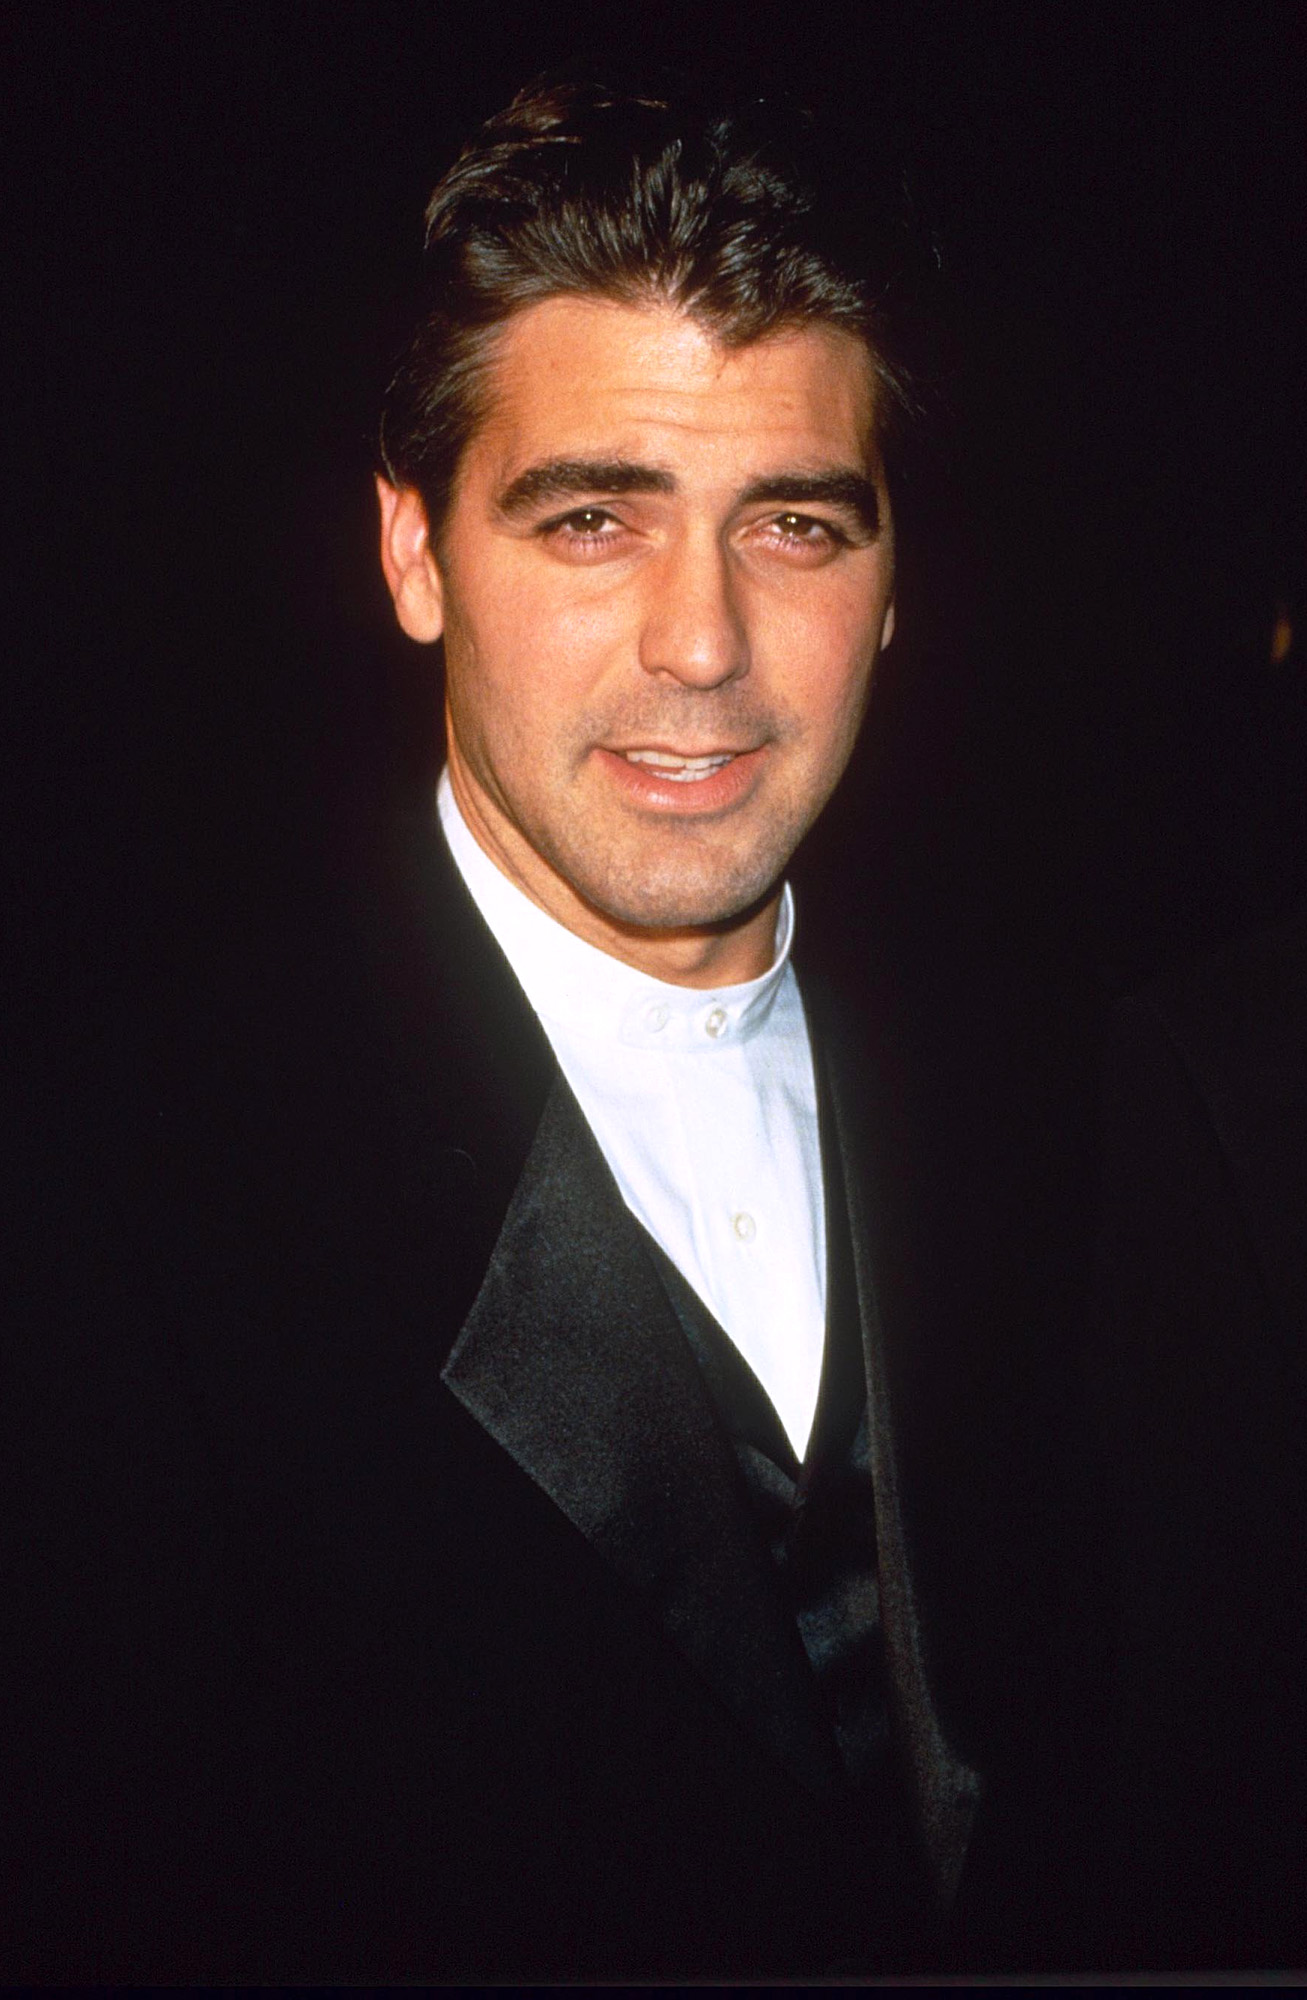 PEOPLES CHOICE AWARDS IN LOS ANGELES, AMERICA - 1995